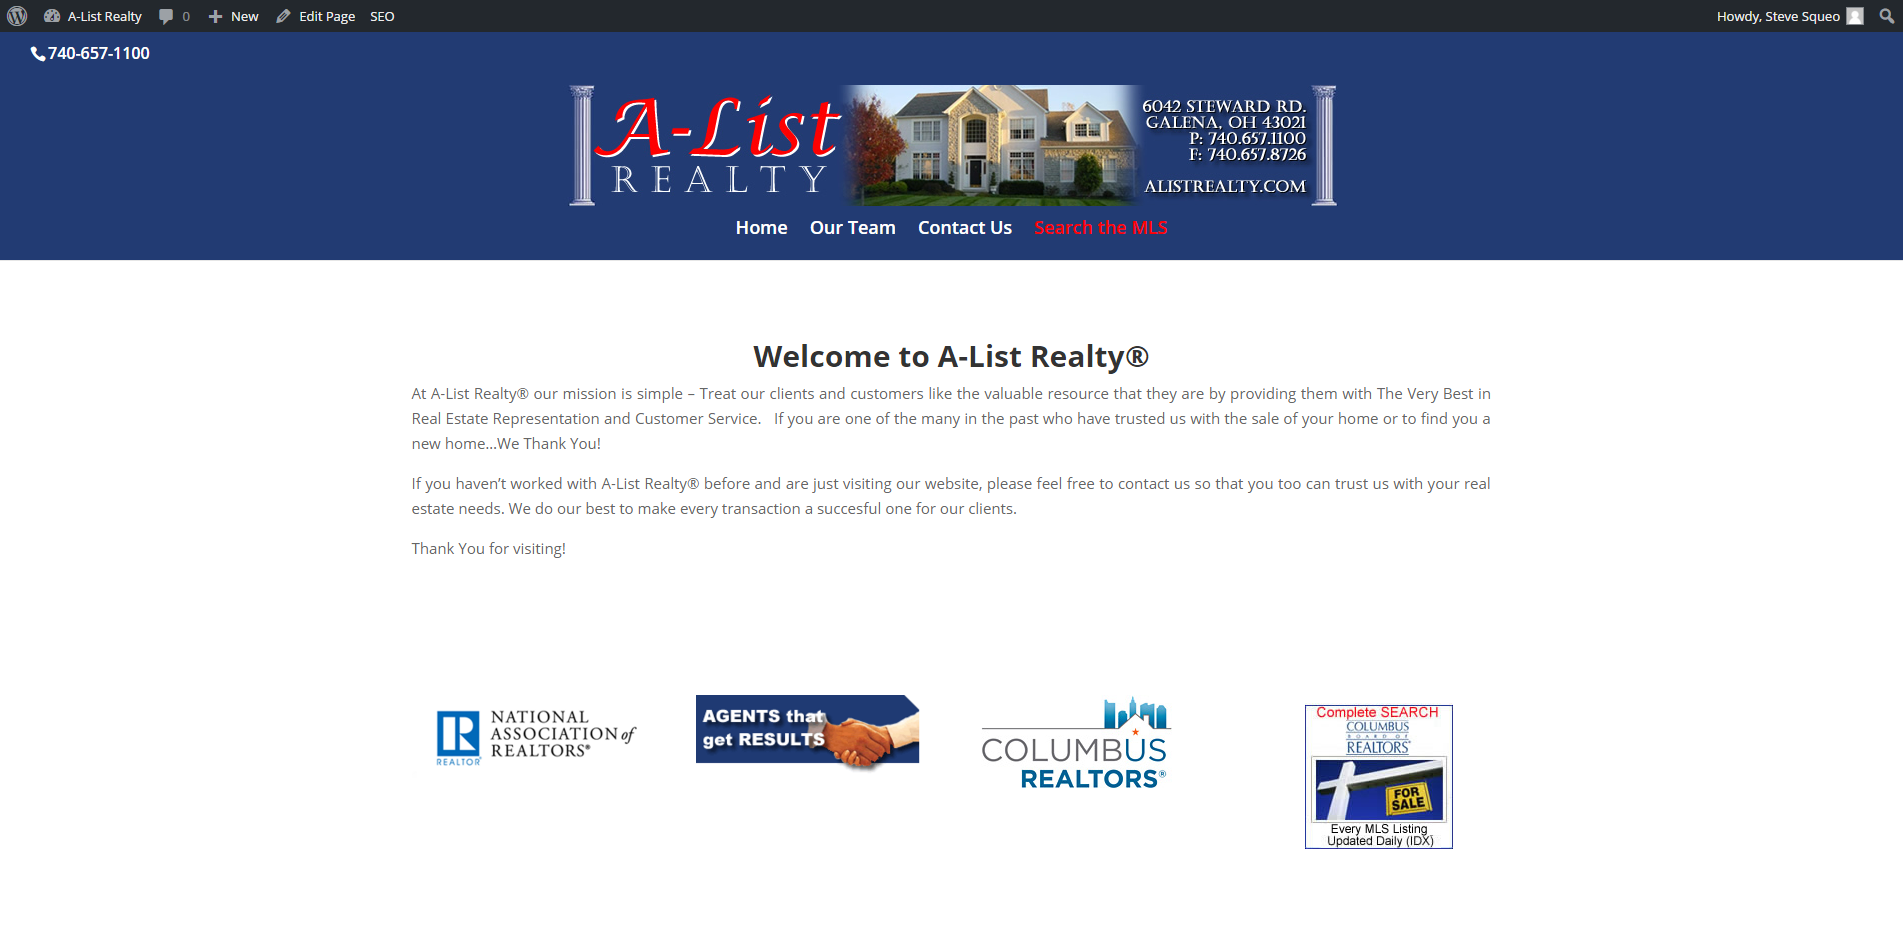 A-List Realty